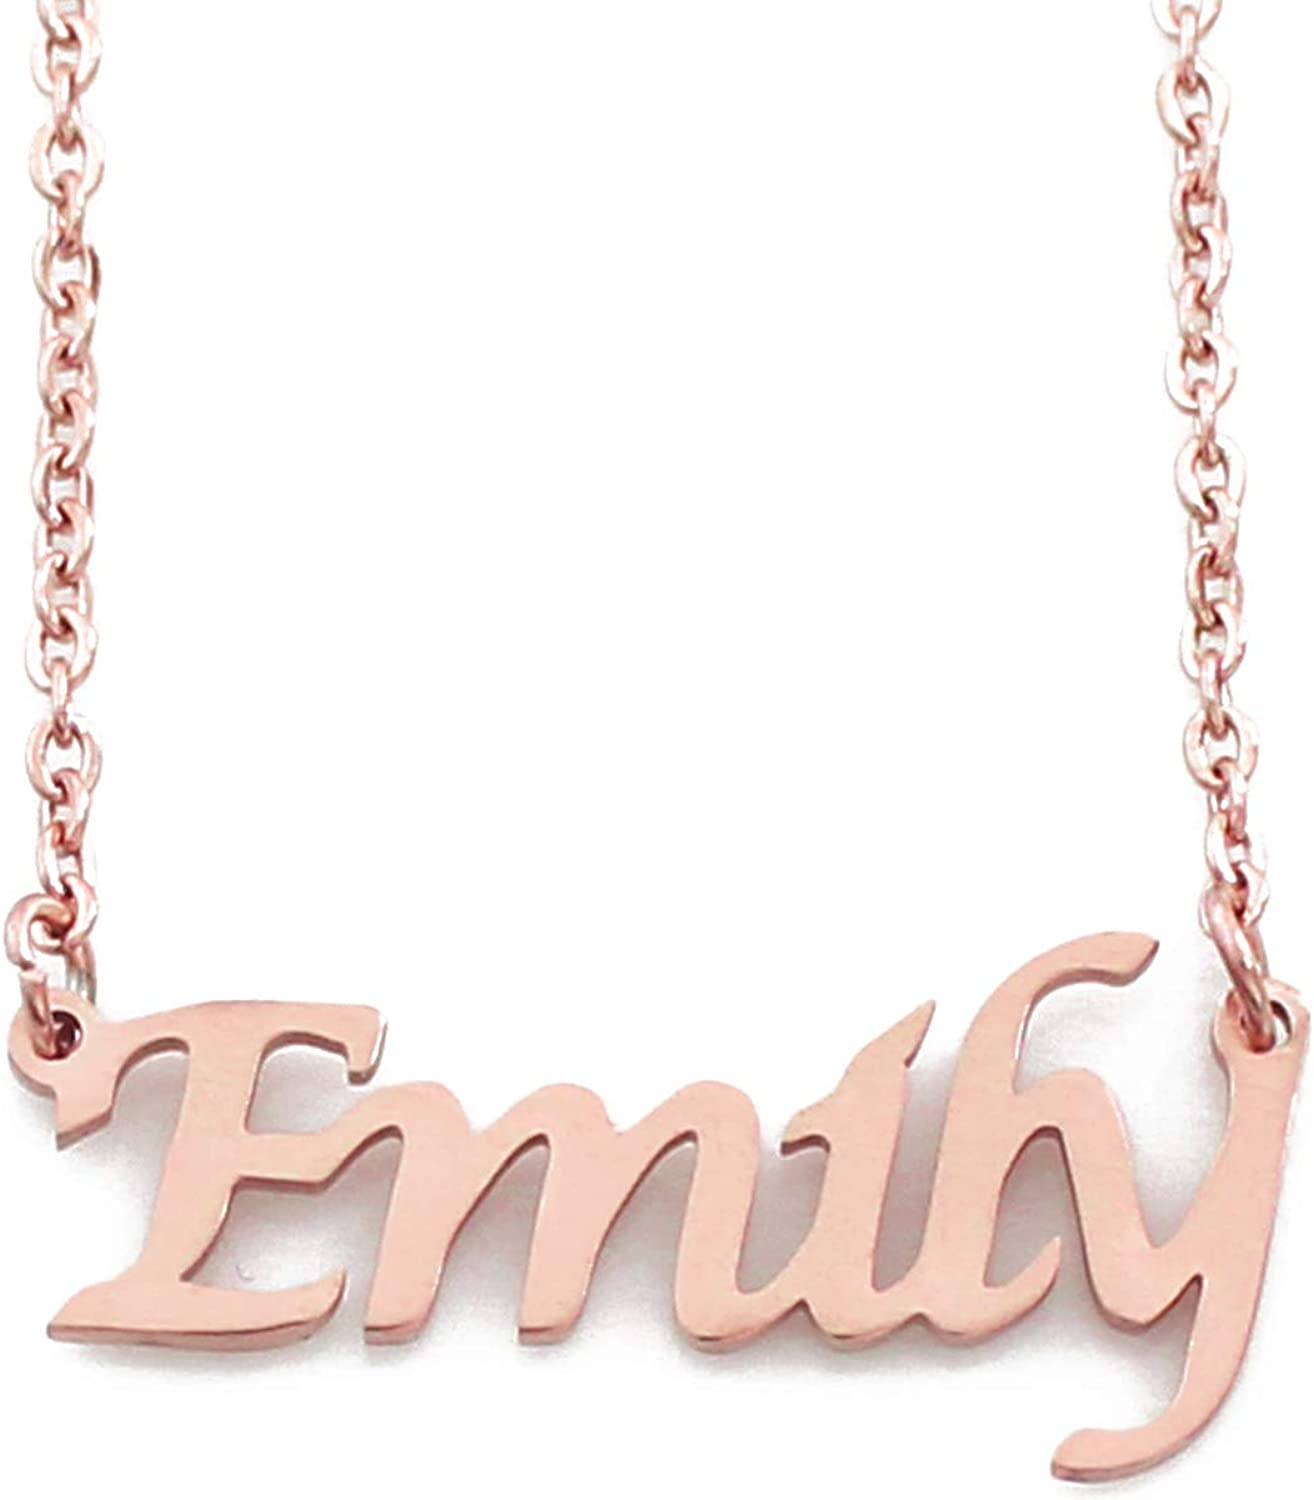 Fashion Jewellery & Watches Emma Emily Letter Name Pendant Charm ...